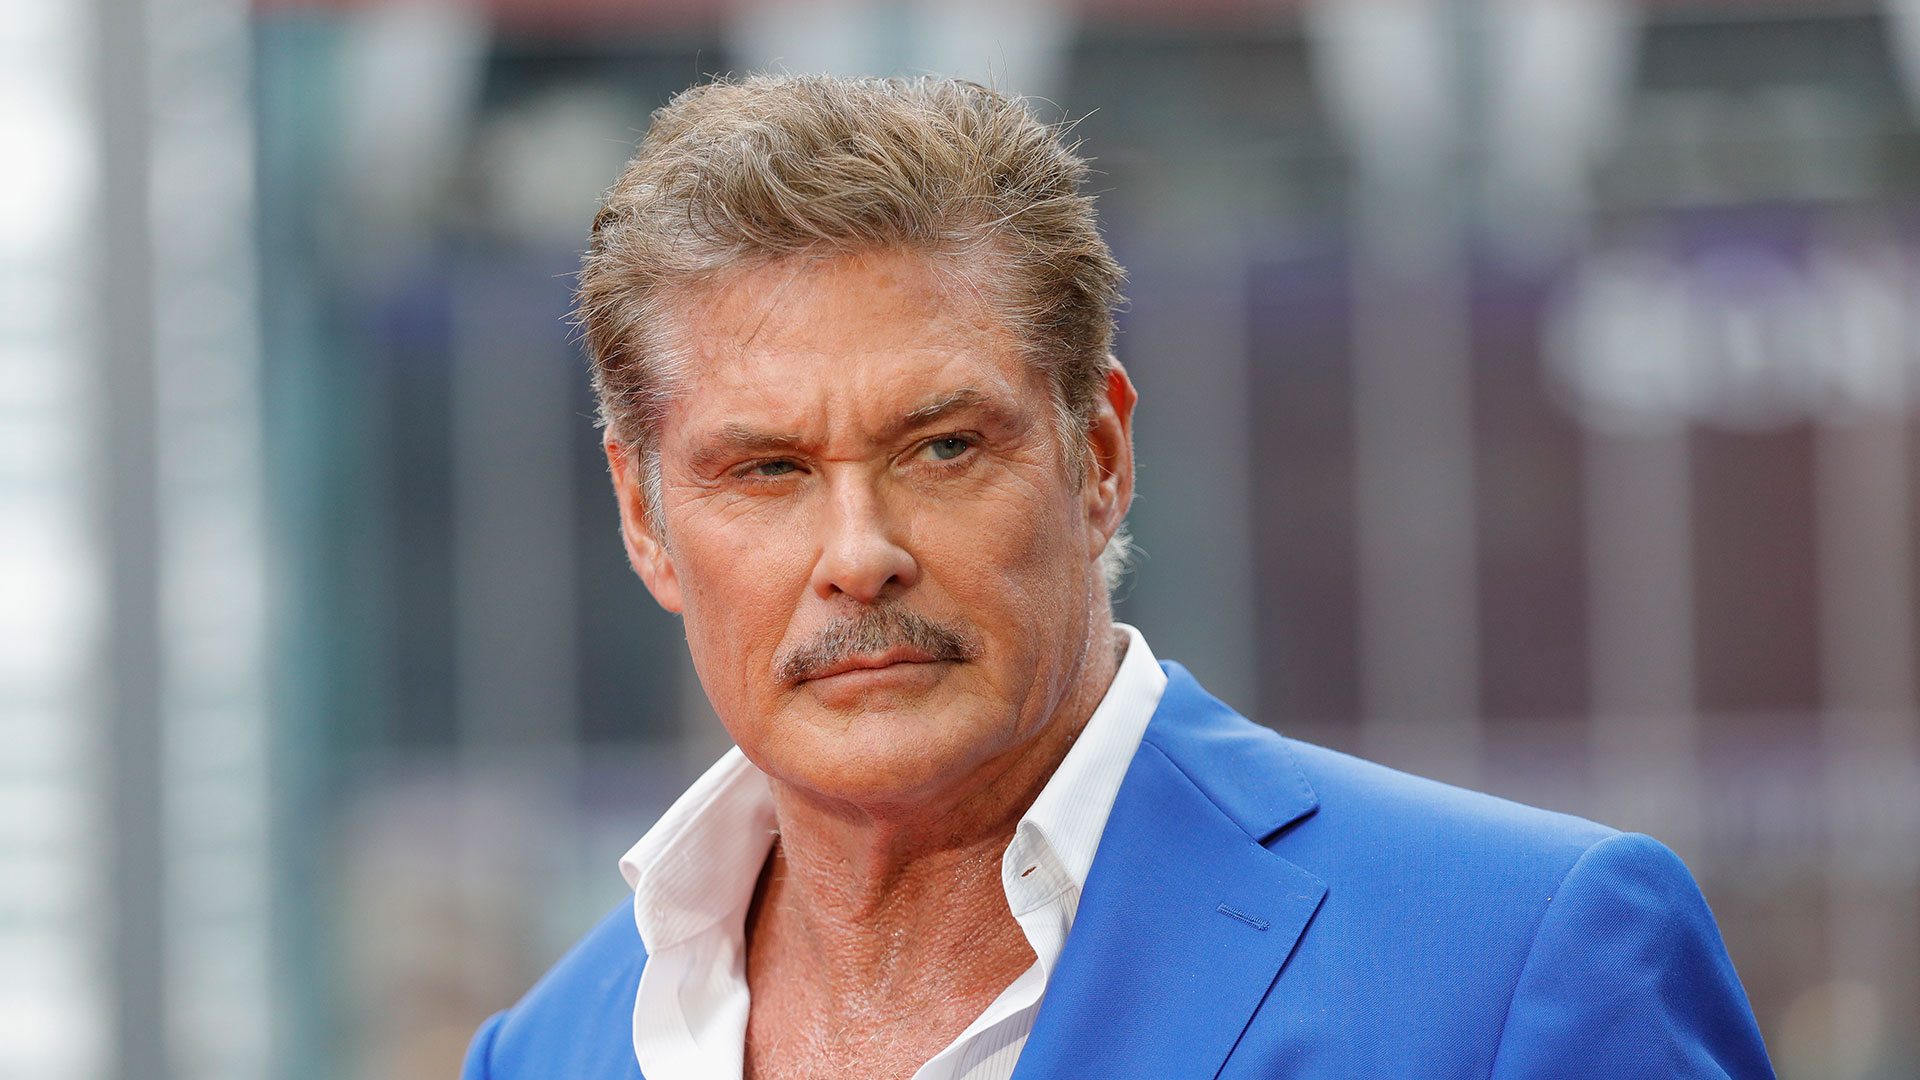 'Baywatch' Legend David Hasselhoff on His Iconic Nickname, Staying Present, and Fighting Kangaroos